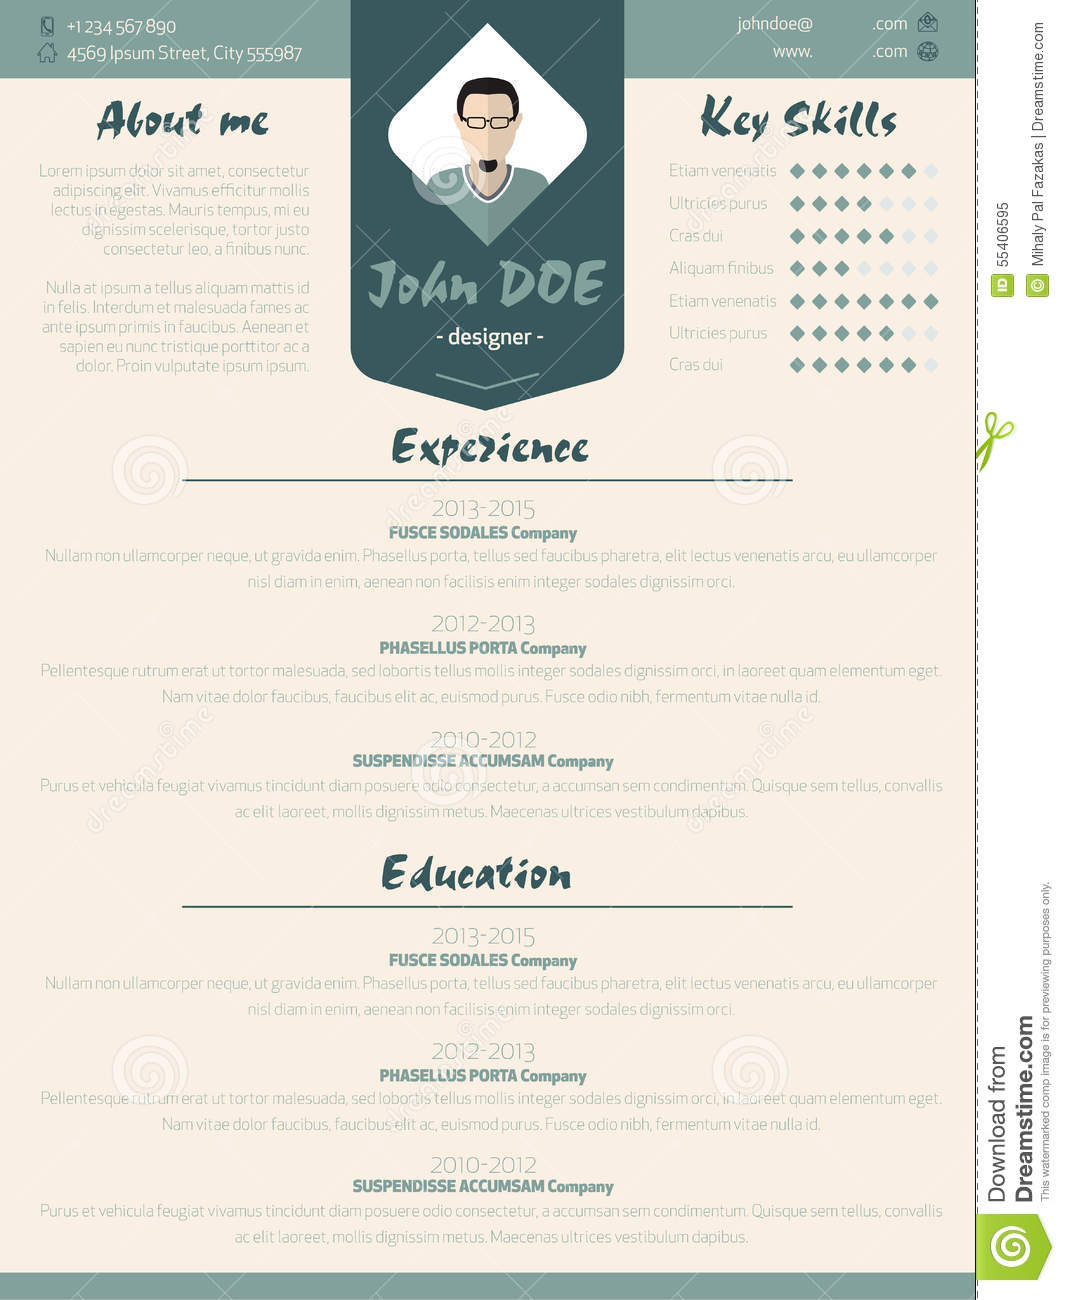 modern resume styles professional resume cover letter sample modern resume styles contemporary resume templates to impress any employer cool new modern resume curriculum vitae